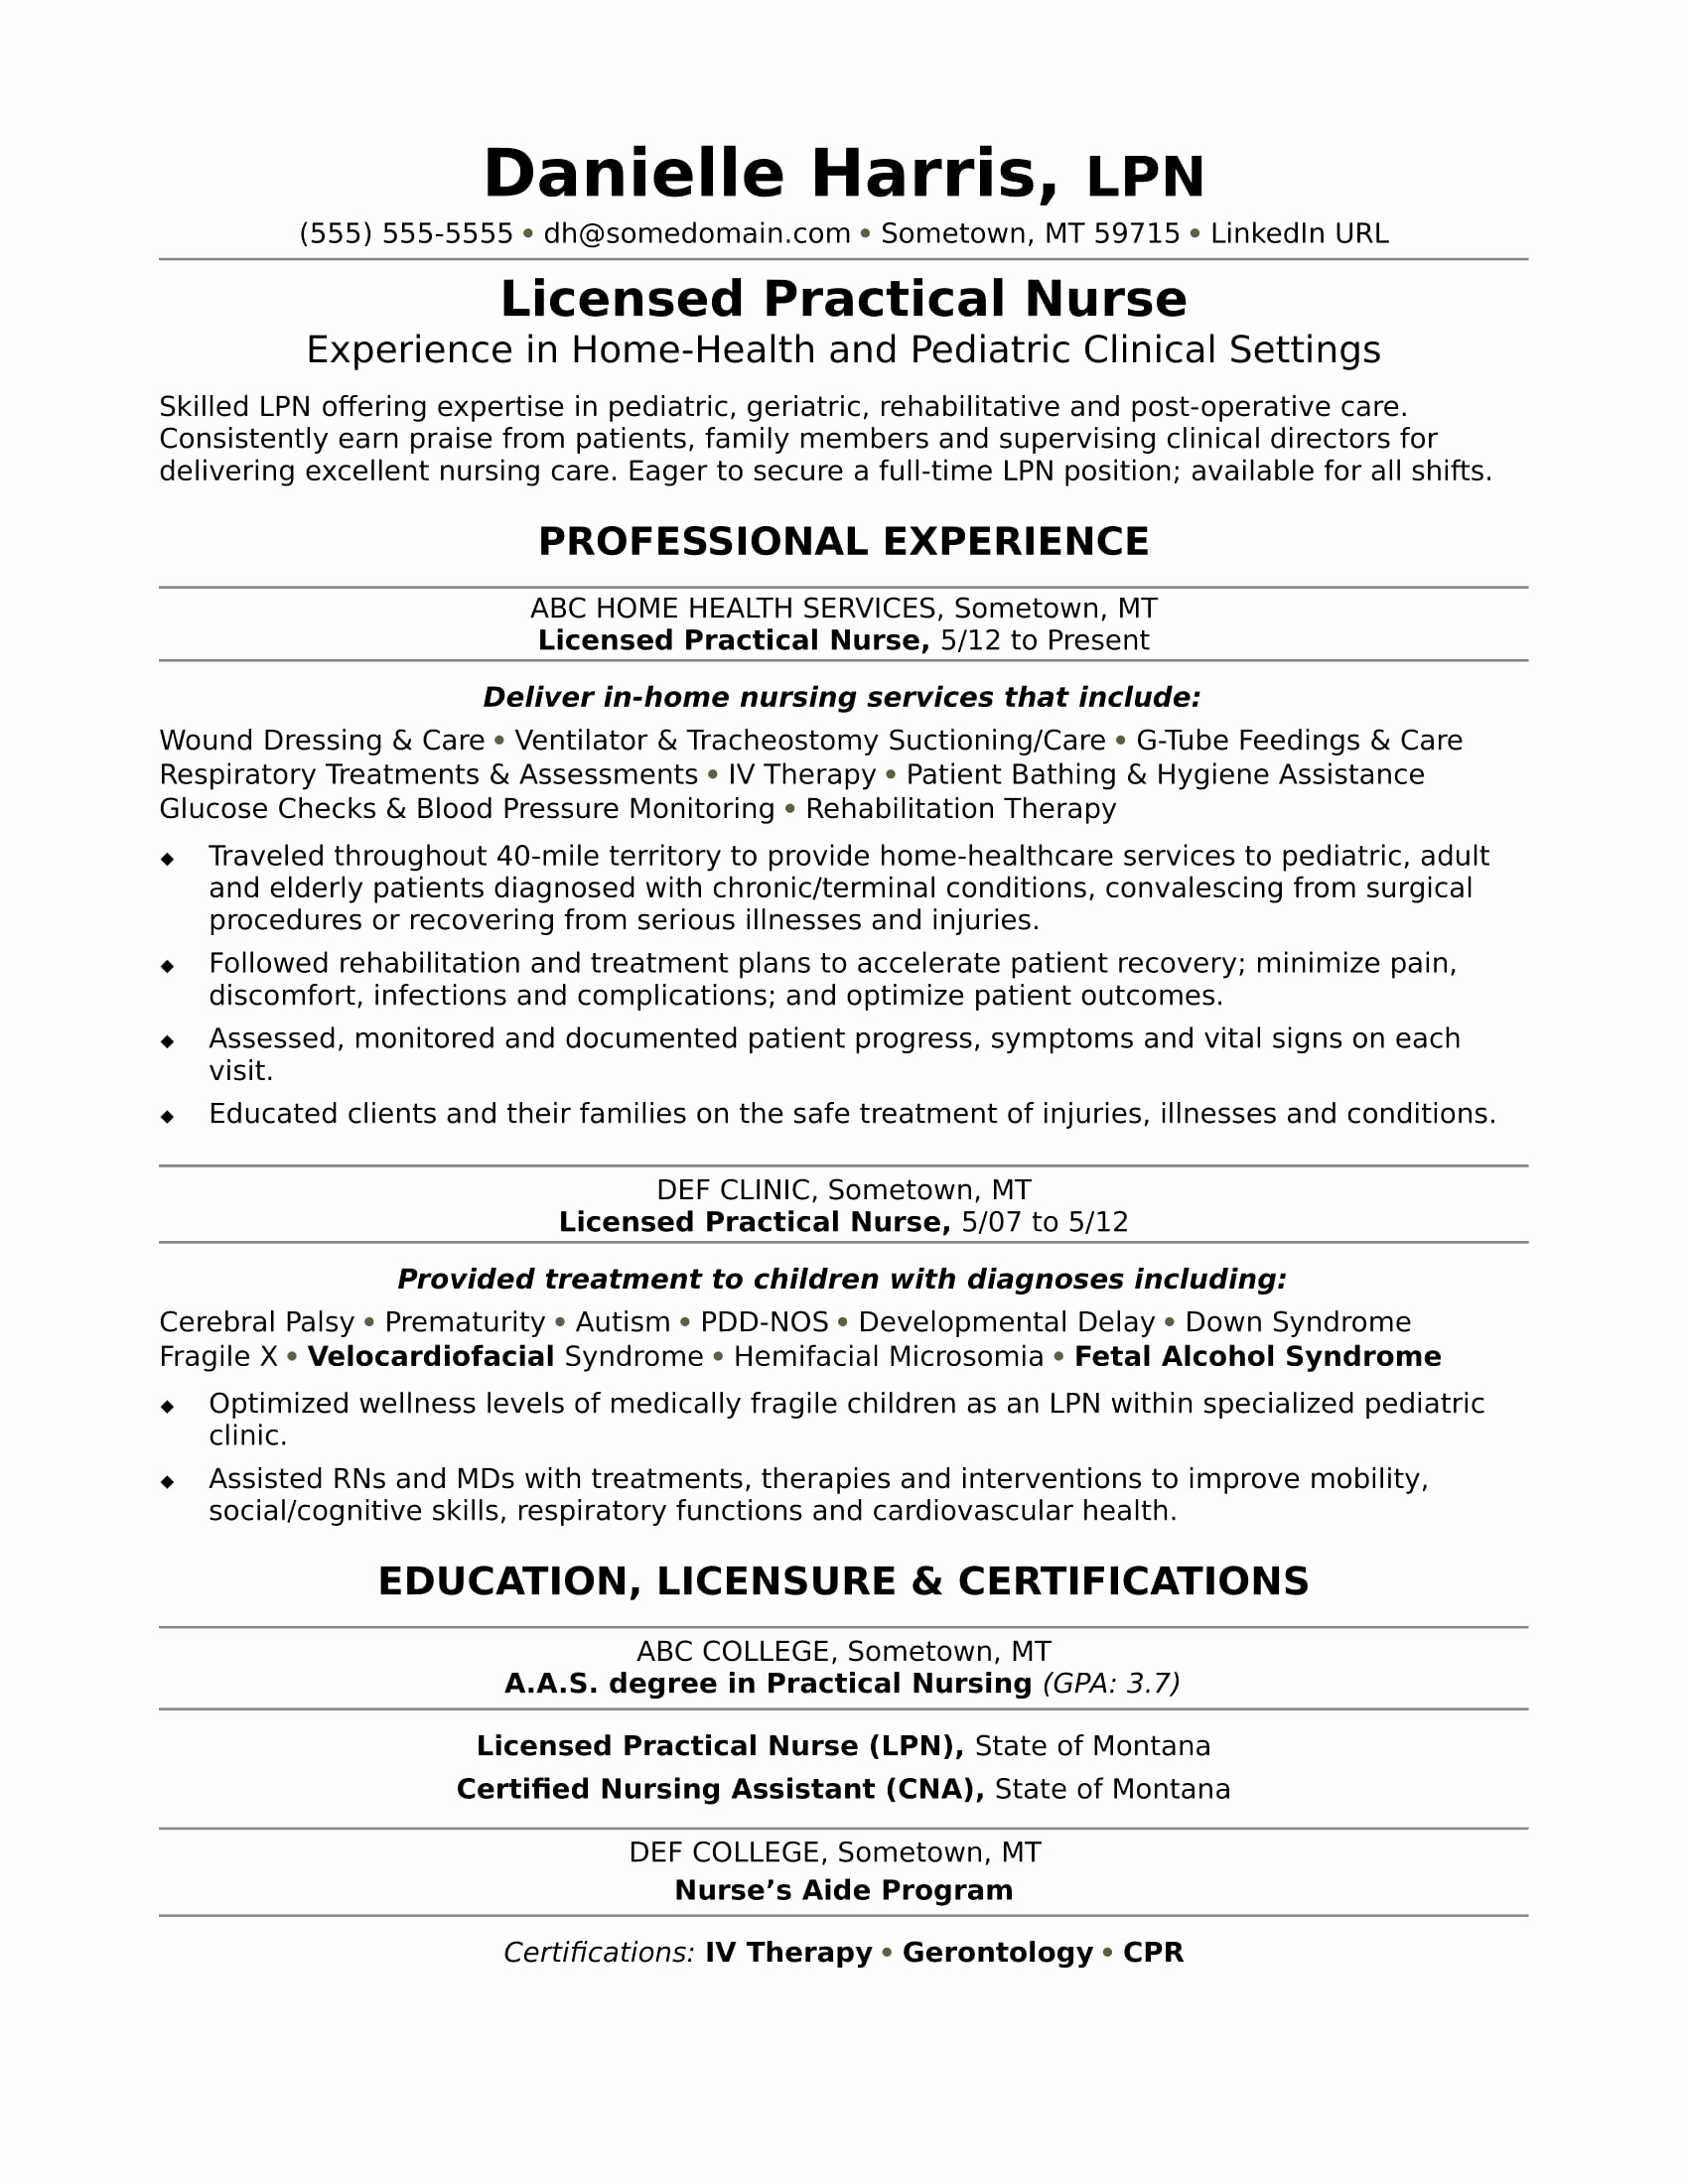 Massage therapist Resume Template - Resume for Massage therapy – Massage therapy Resume Template New